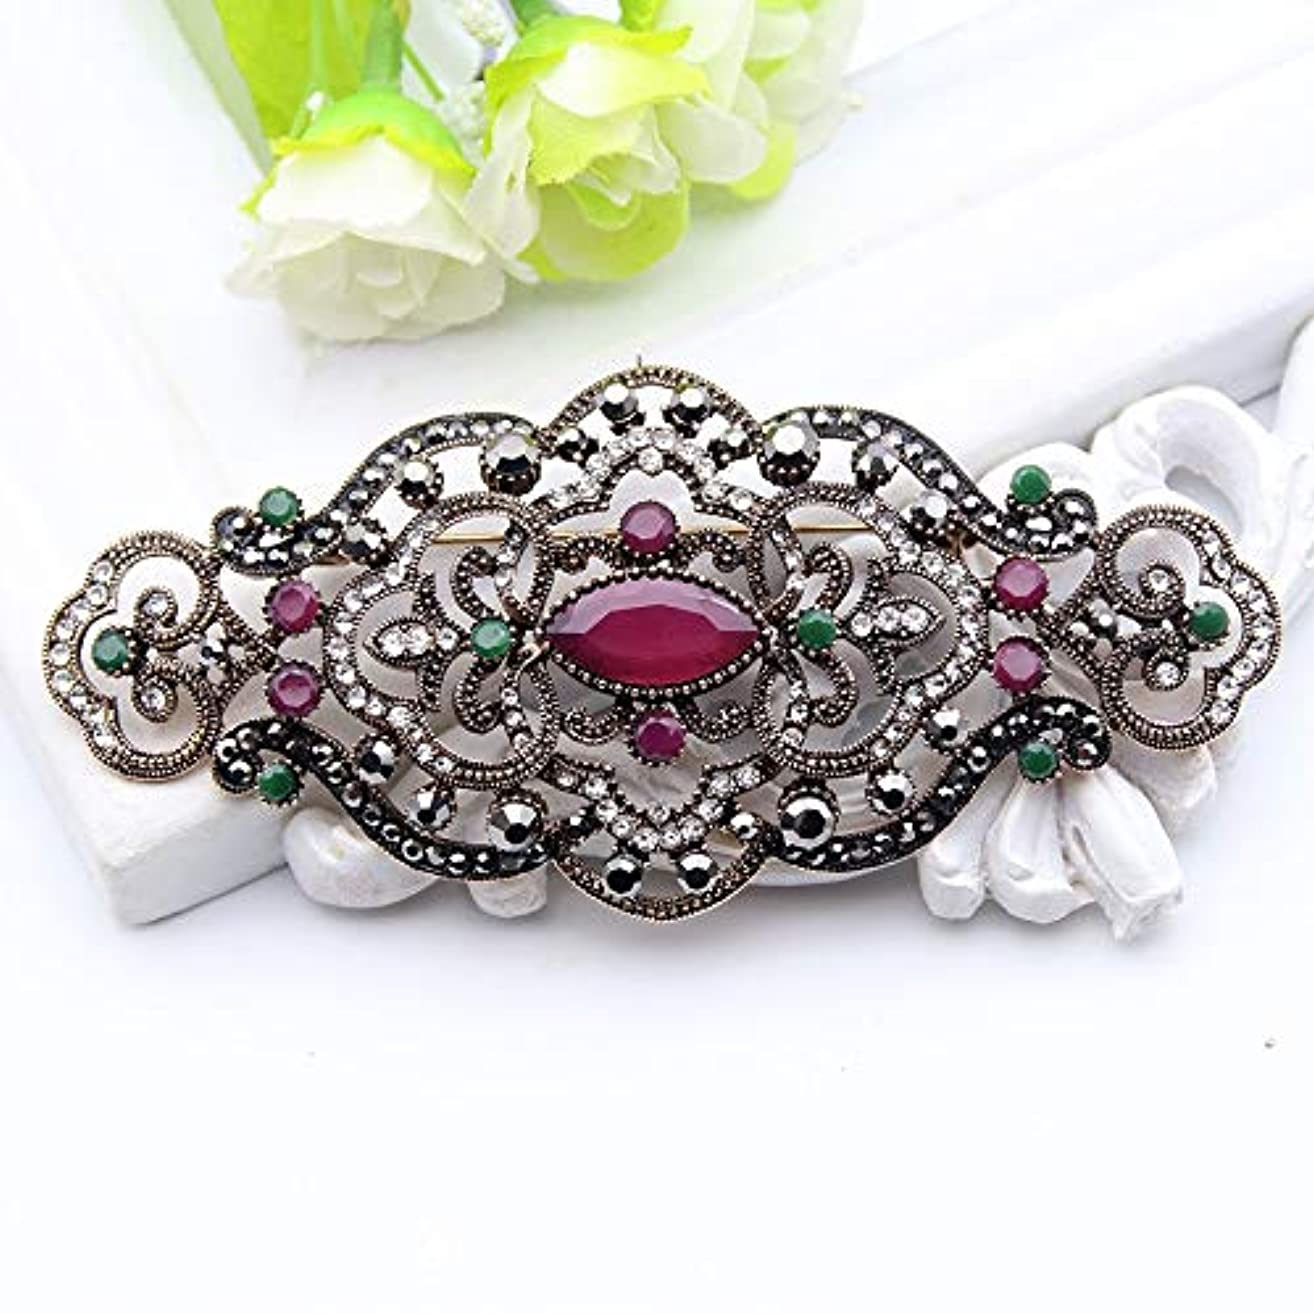 Plus Size Women Brooch Ellipse Hollow Out Flower Cap Badge Hairpin Belt Pin Antique Gold Color Rhinestone Turkish Resin Jewelry-in Brooches